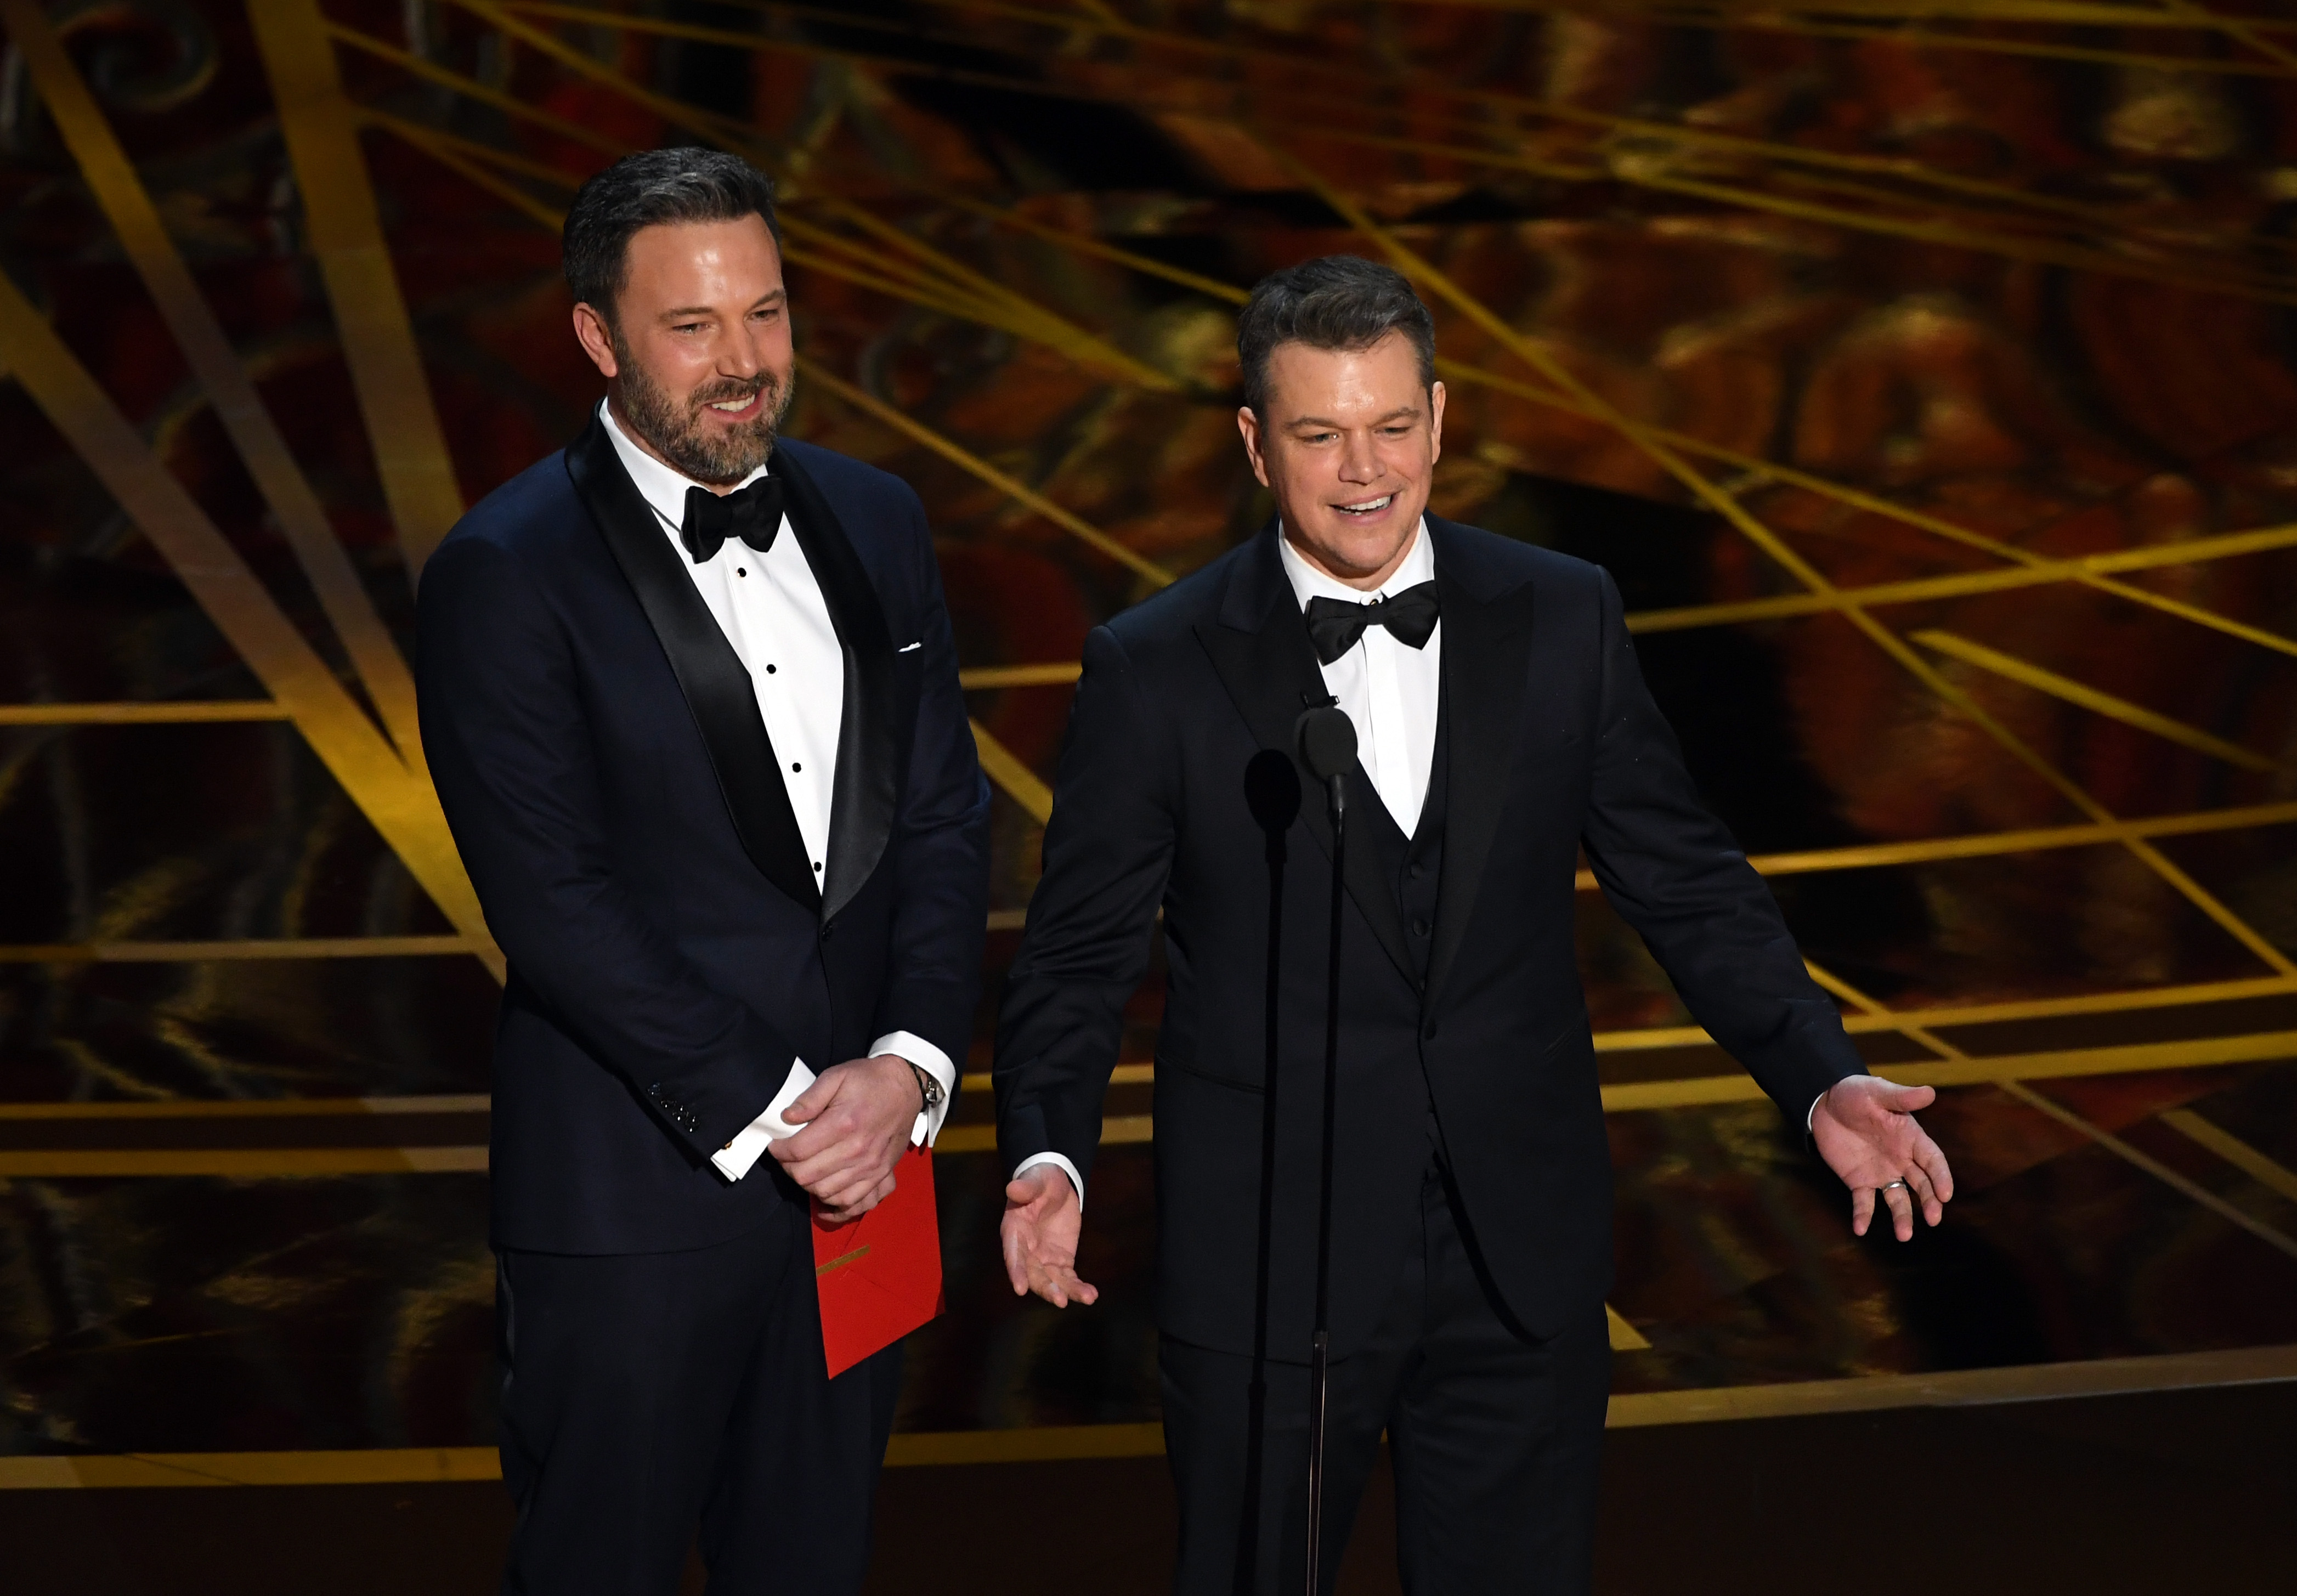 Ben Affleck and Matt Damon speak onstage during the 89th Annual Academy Awards at Hollywood & Highland Center on February 26, 2017 in Hollywood